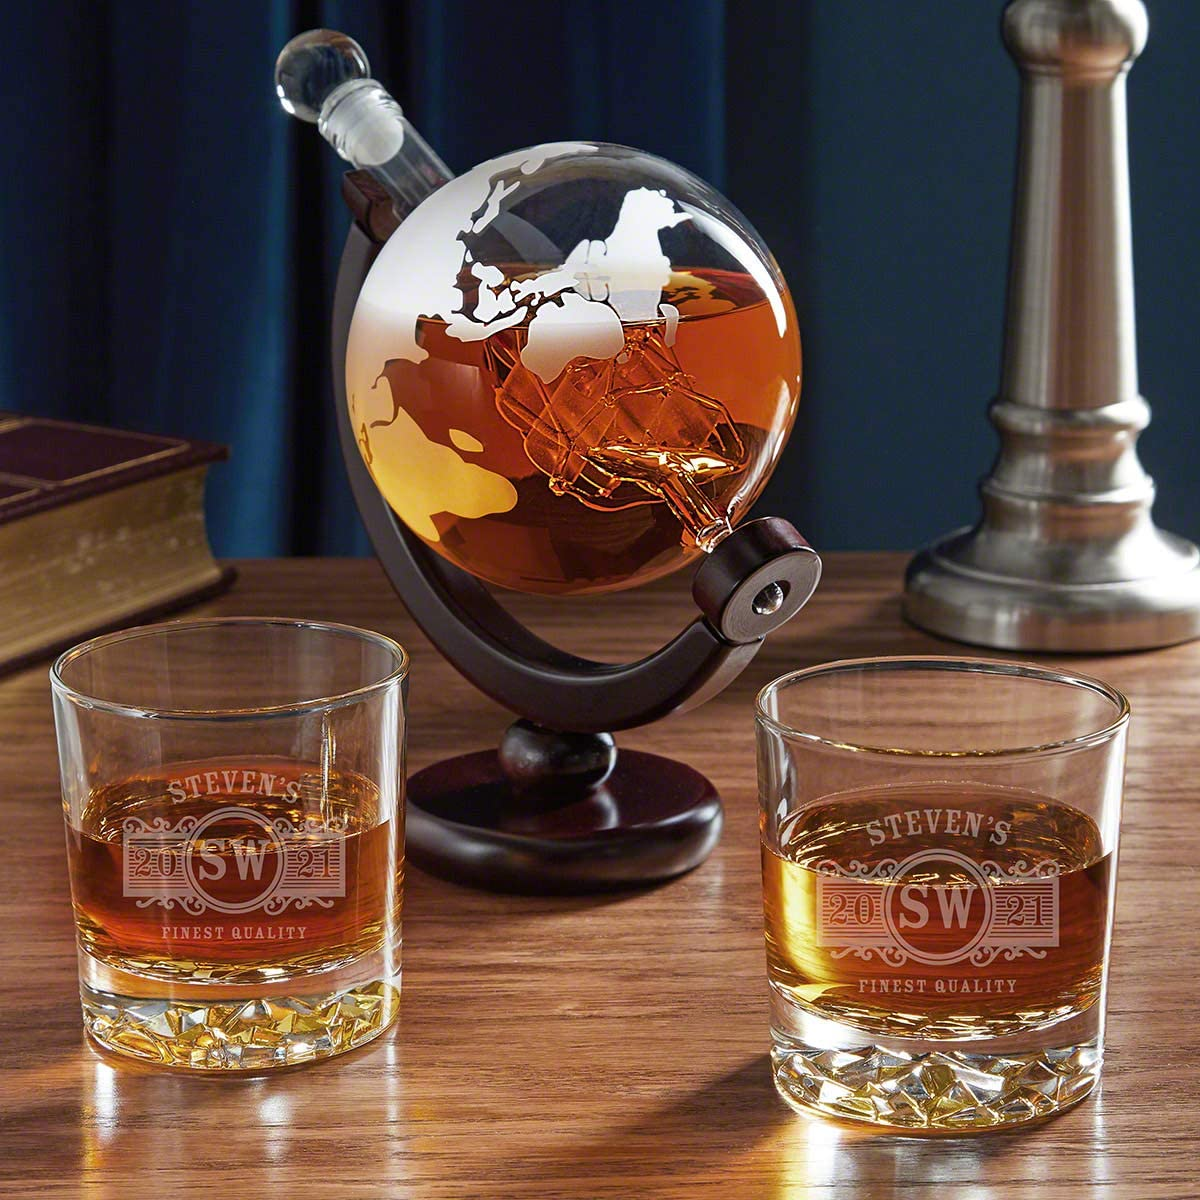 Marquee Personalized Fairbanks Glasses with Globe Decanter Set Custom Gift